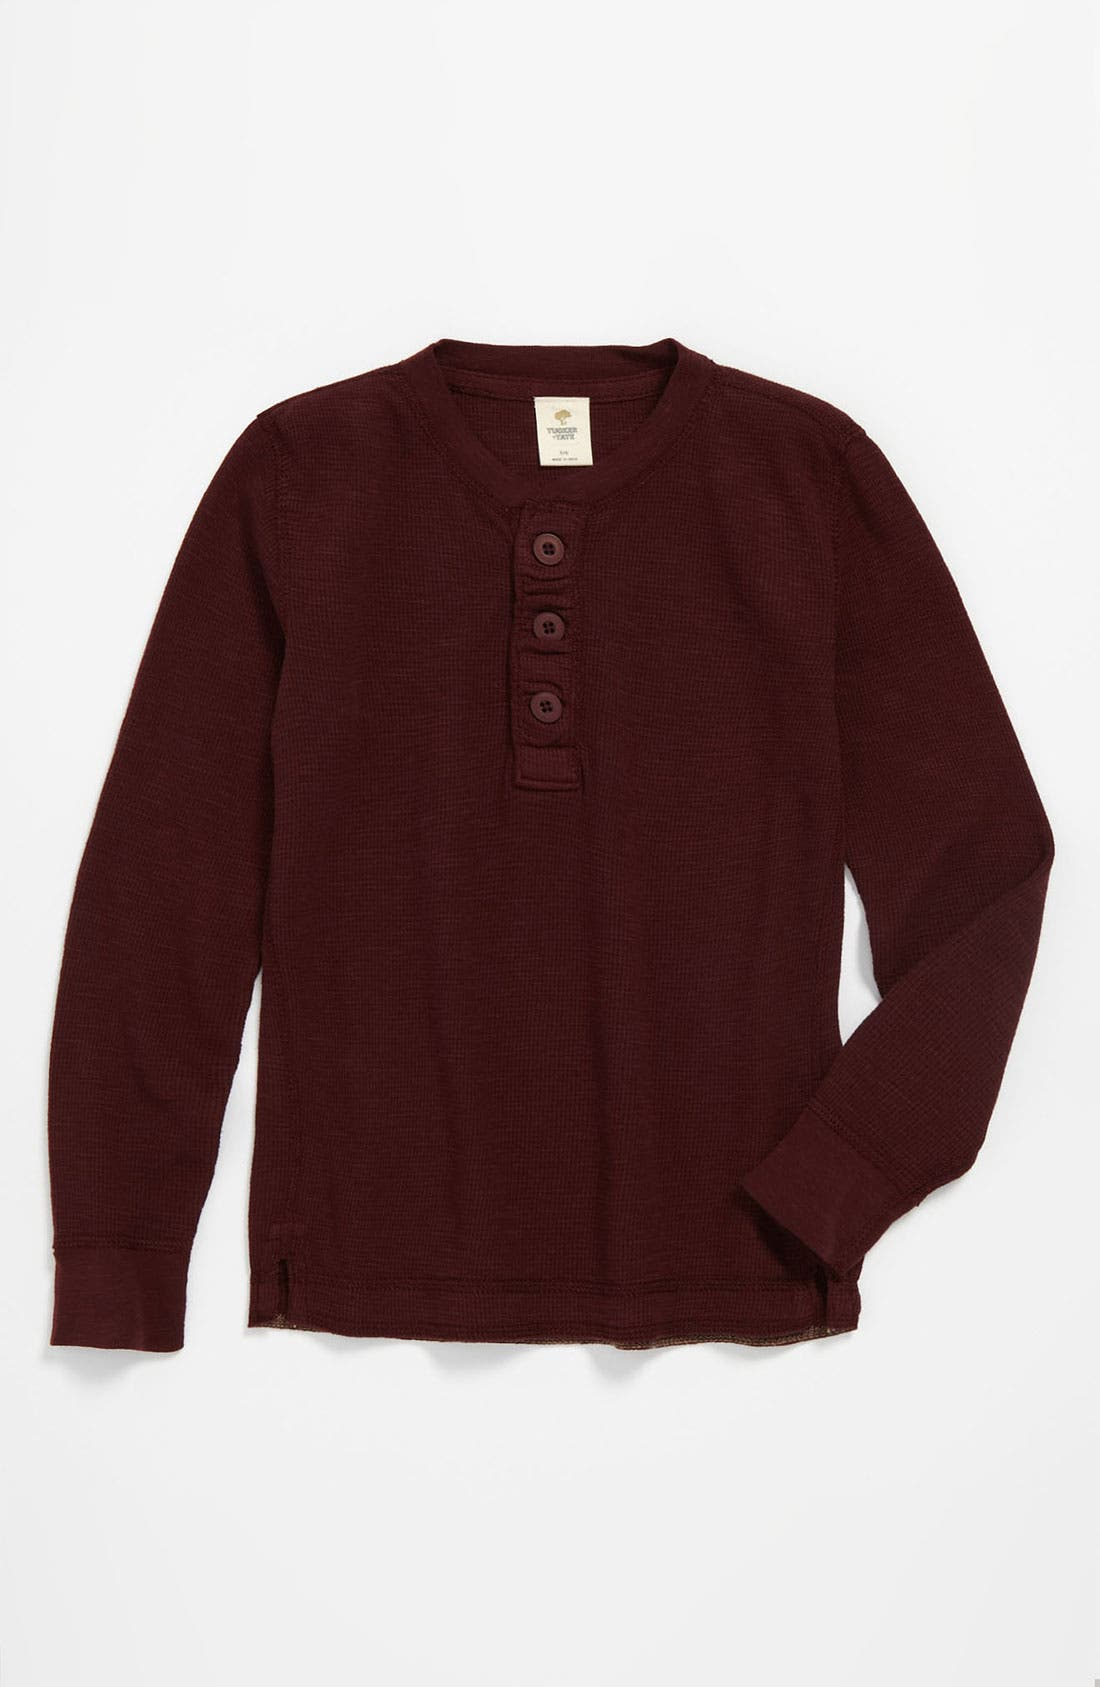 Alternate Image 1 Selected - Tucker + Tate 'Holden' Thermal Henley Top (Big Boys)